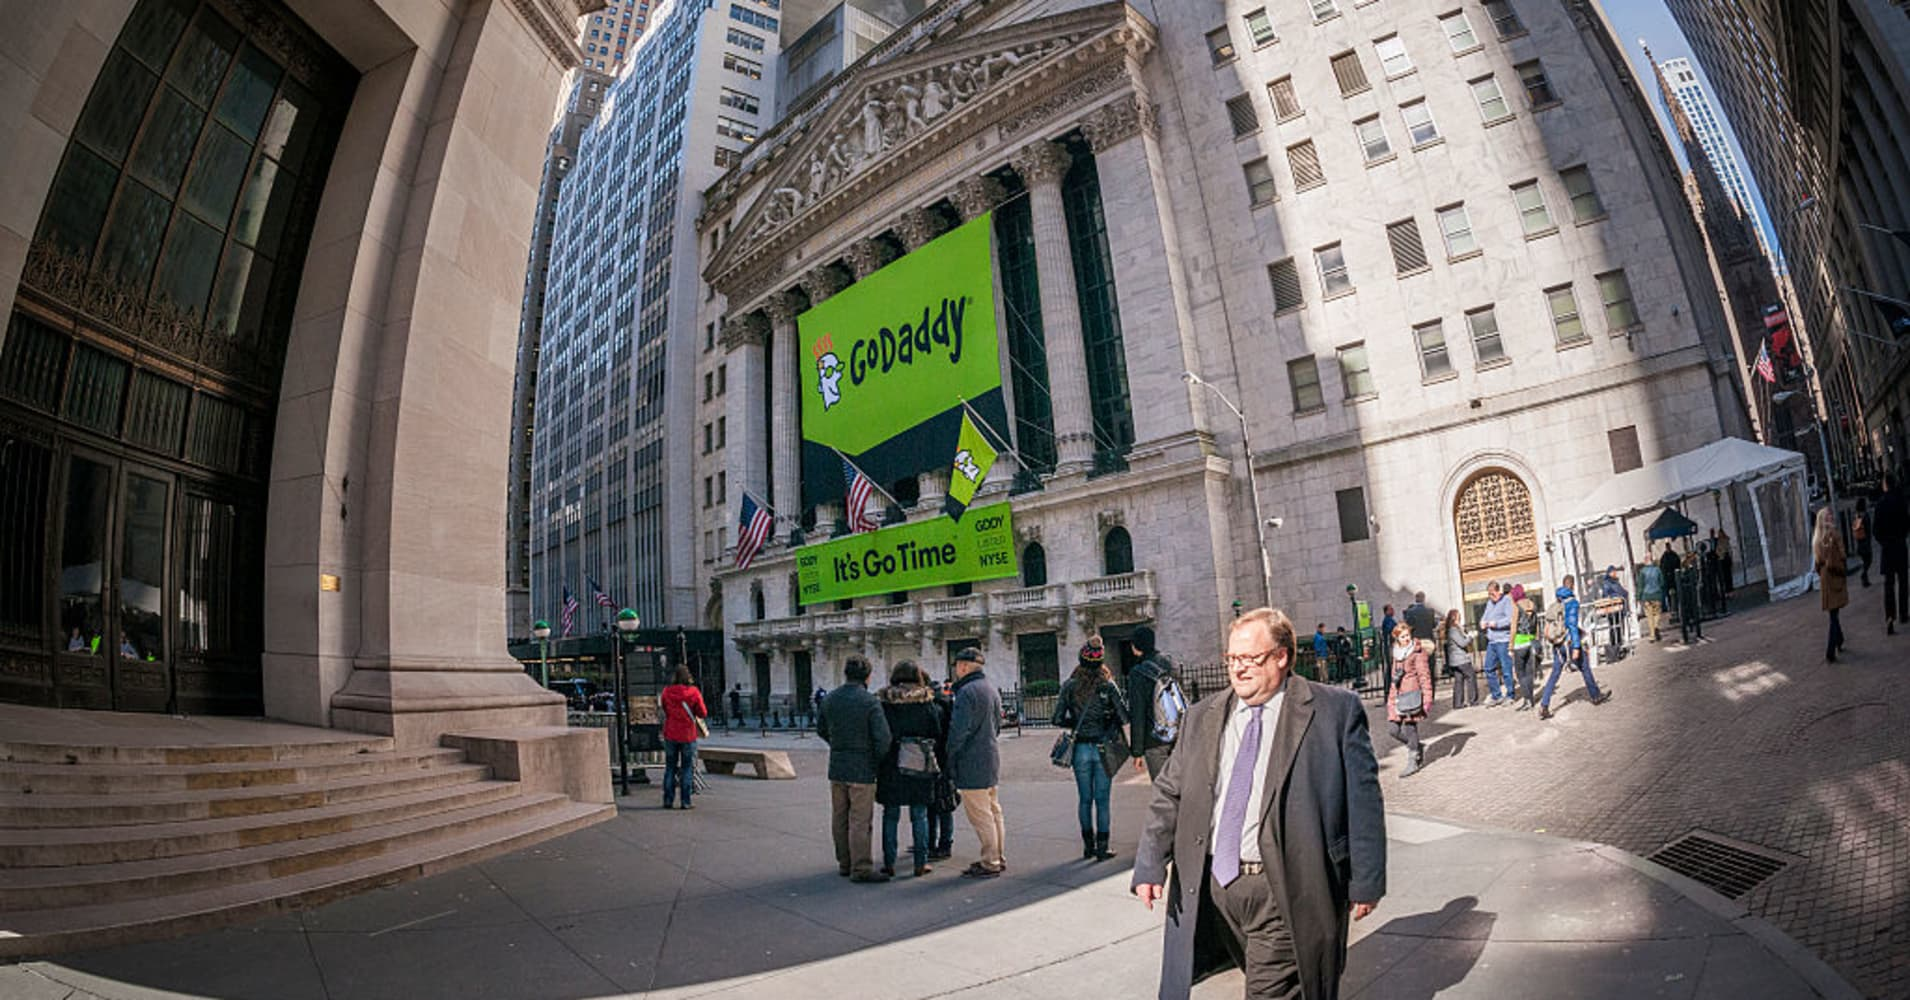 Godaddy Casts Eye Outside Us Says Asia Key For Expansion With Mobile